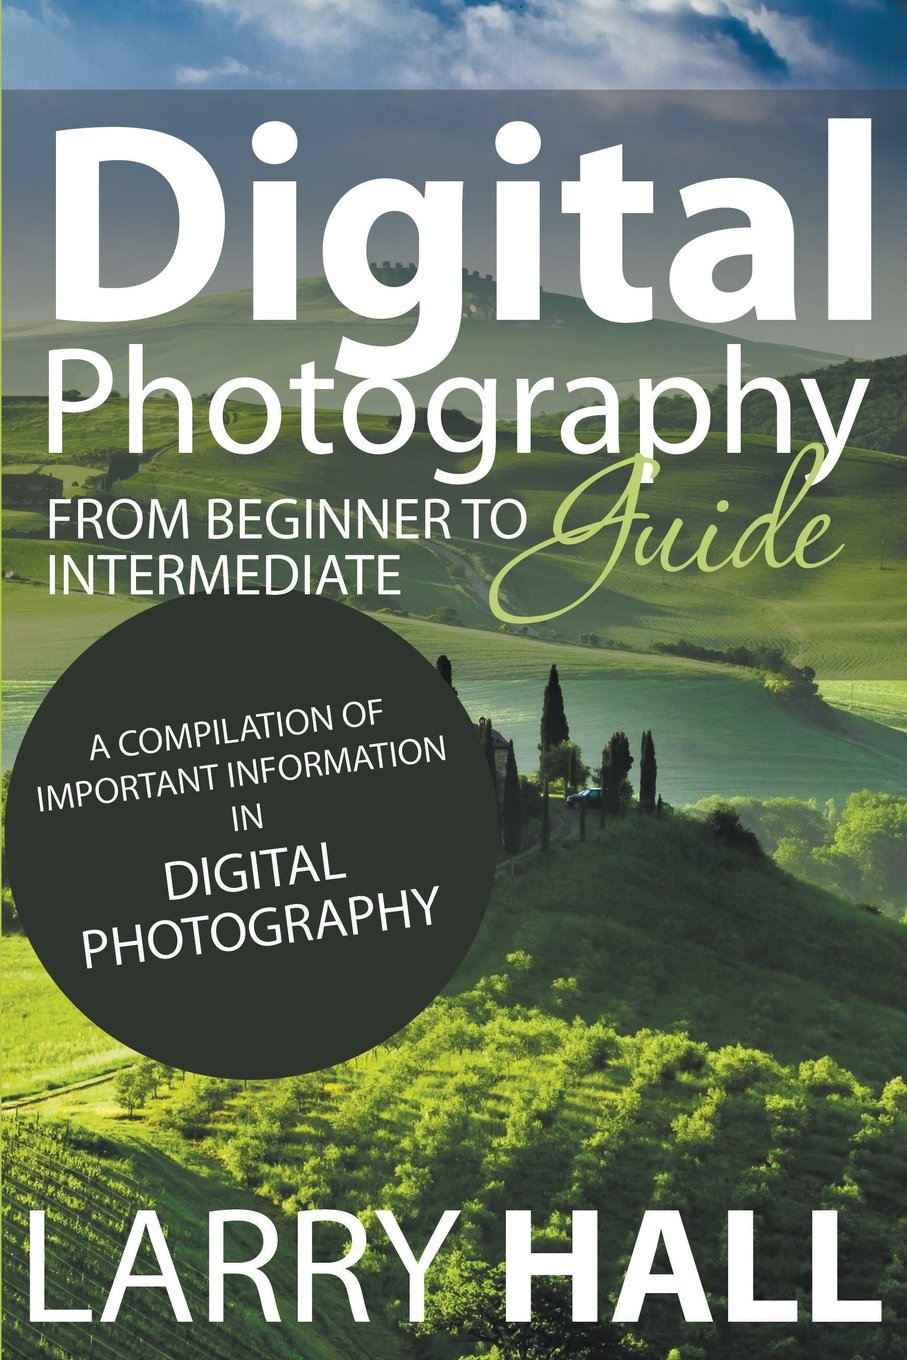 Download Digital Photography Guide: From Beginner to Intermediate: A Compilation of Important Information in Digital Photography PDF